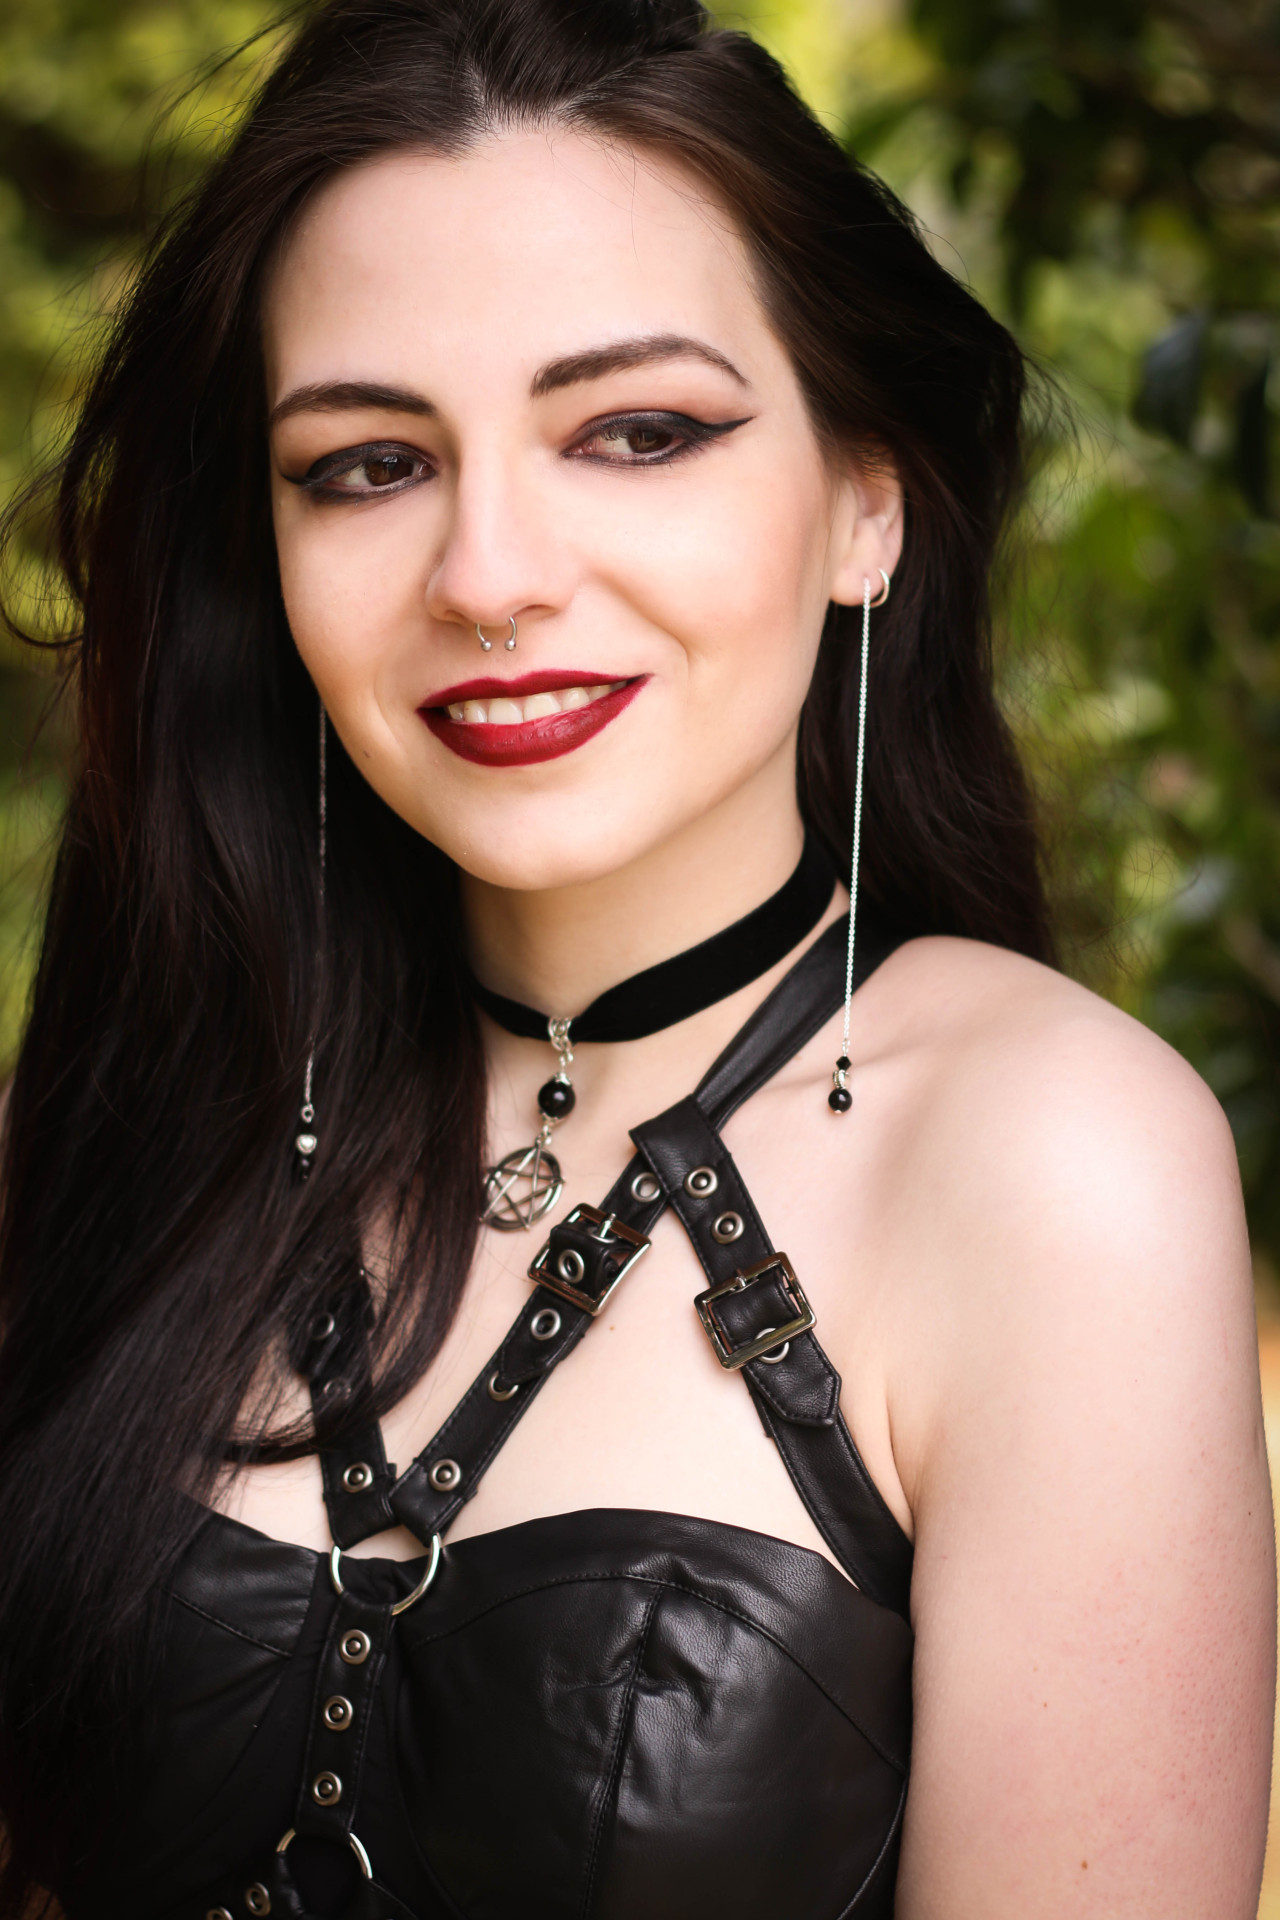 Model: Silky Dress: The Gothic Shop Jewellery: The Black Cat Jewellery Store Welcome to Gothic and Amazing | www.gothicandamazing.org